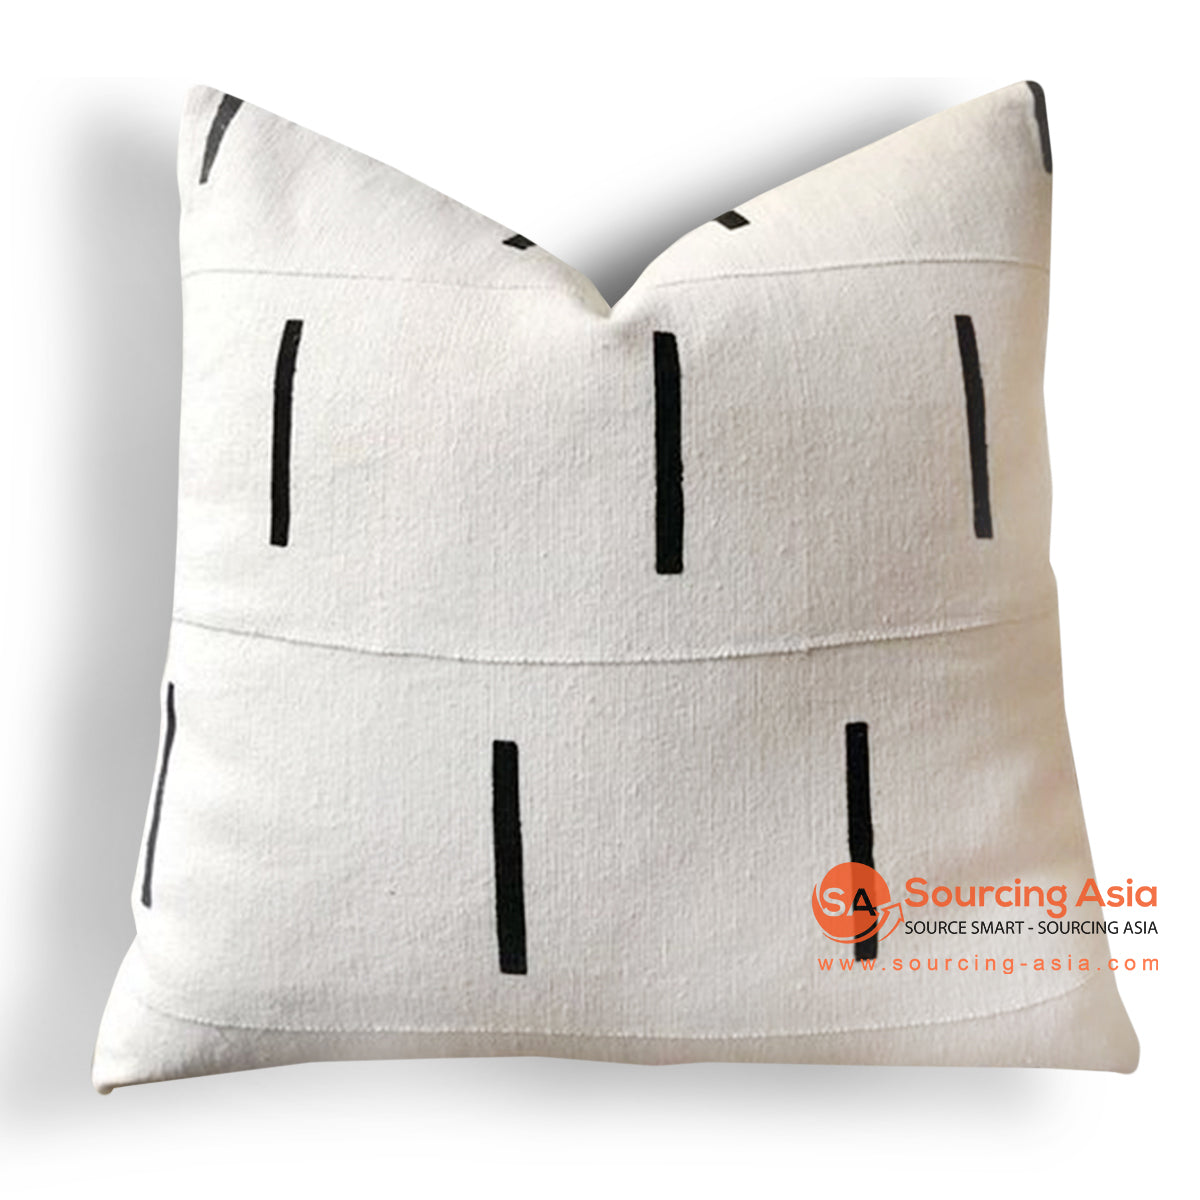 HIP016  EMBROIDERED CUSHION 50 X 50 CM